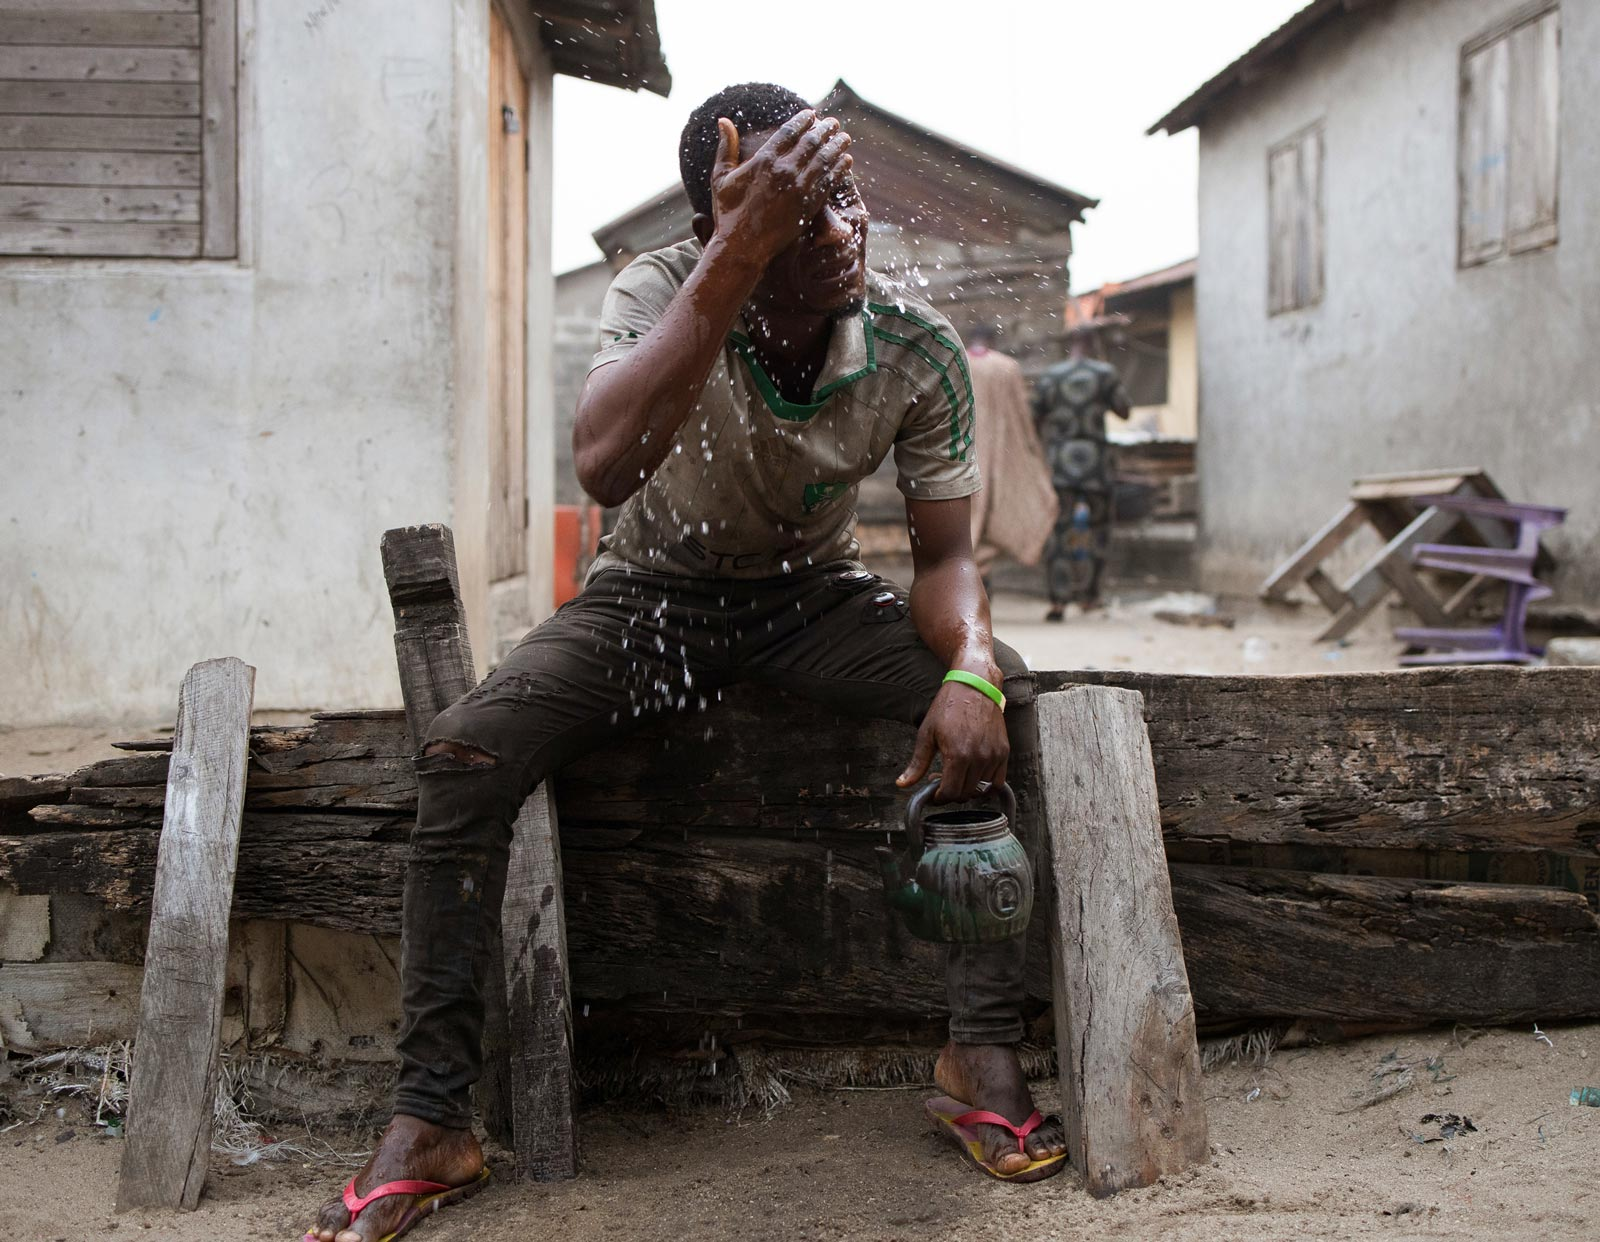 A man sitting down, washes his face using water from a small pot